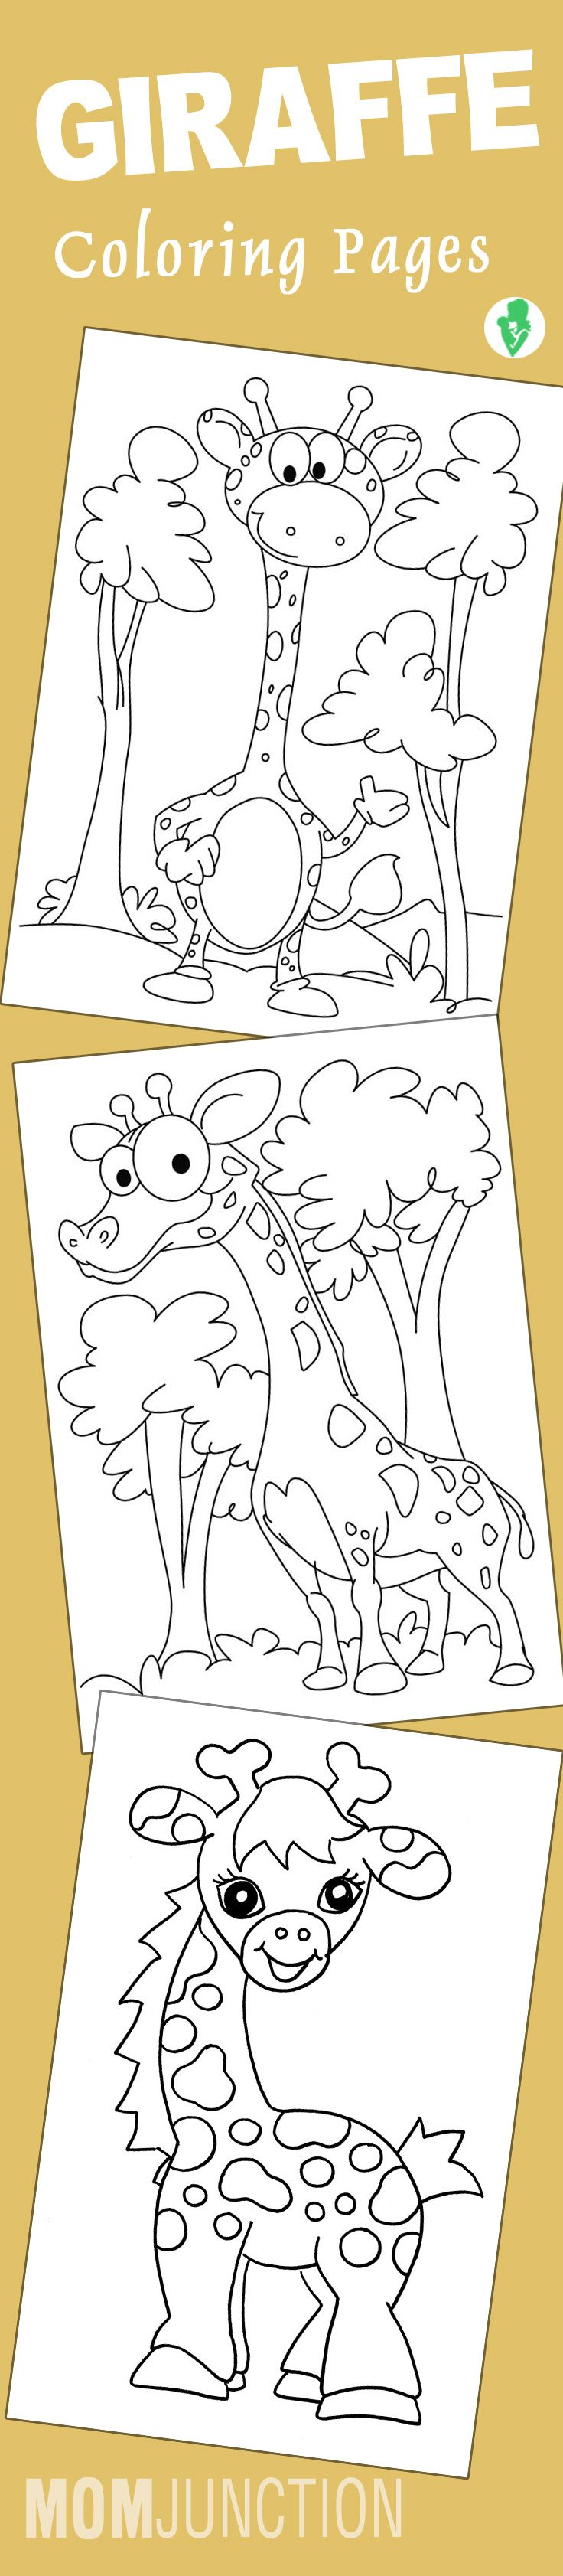 Bu buy colouring in books online - Top 20 Free Printable Giraffe Coloring Pages Online